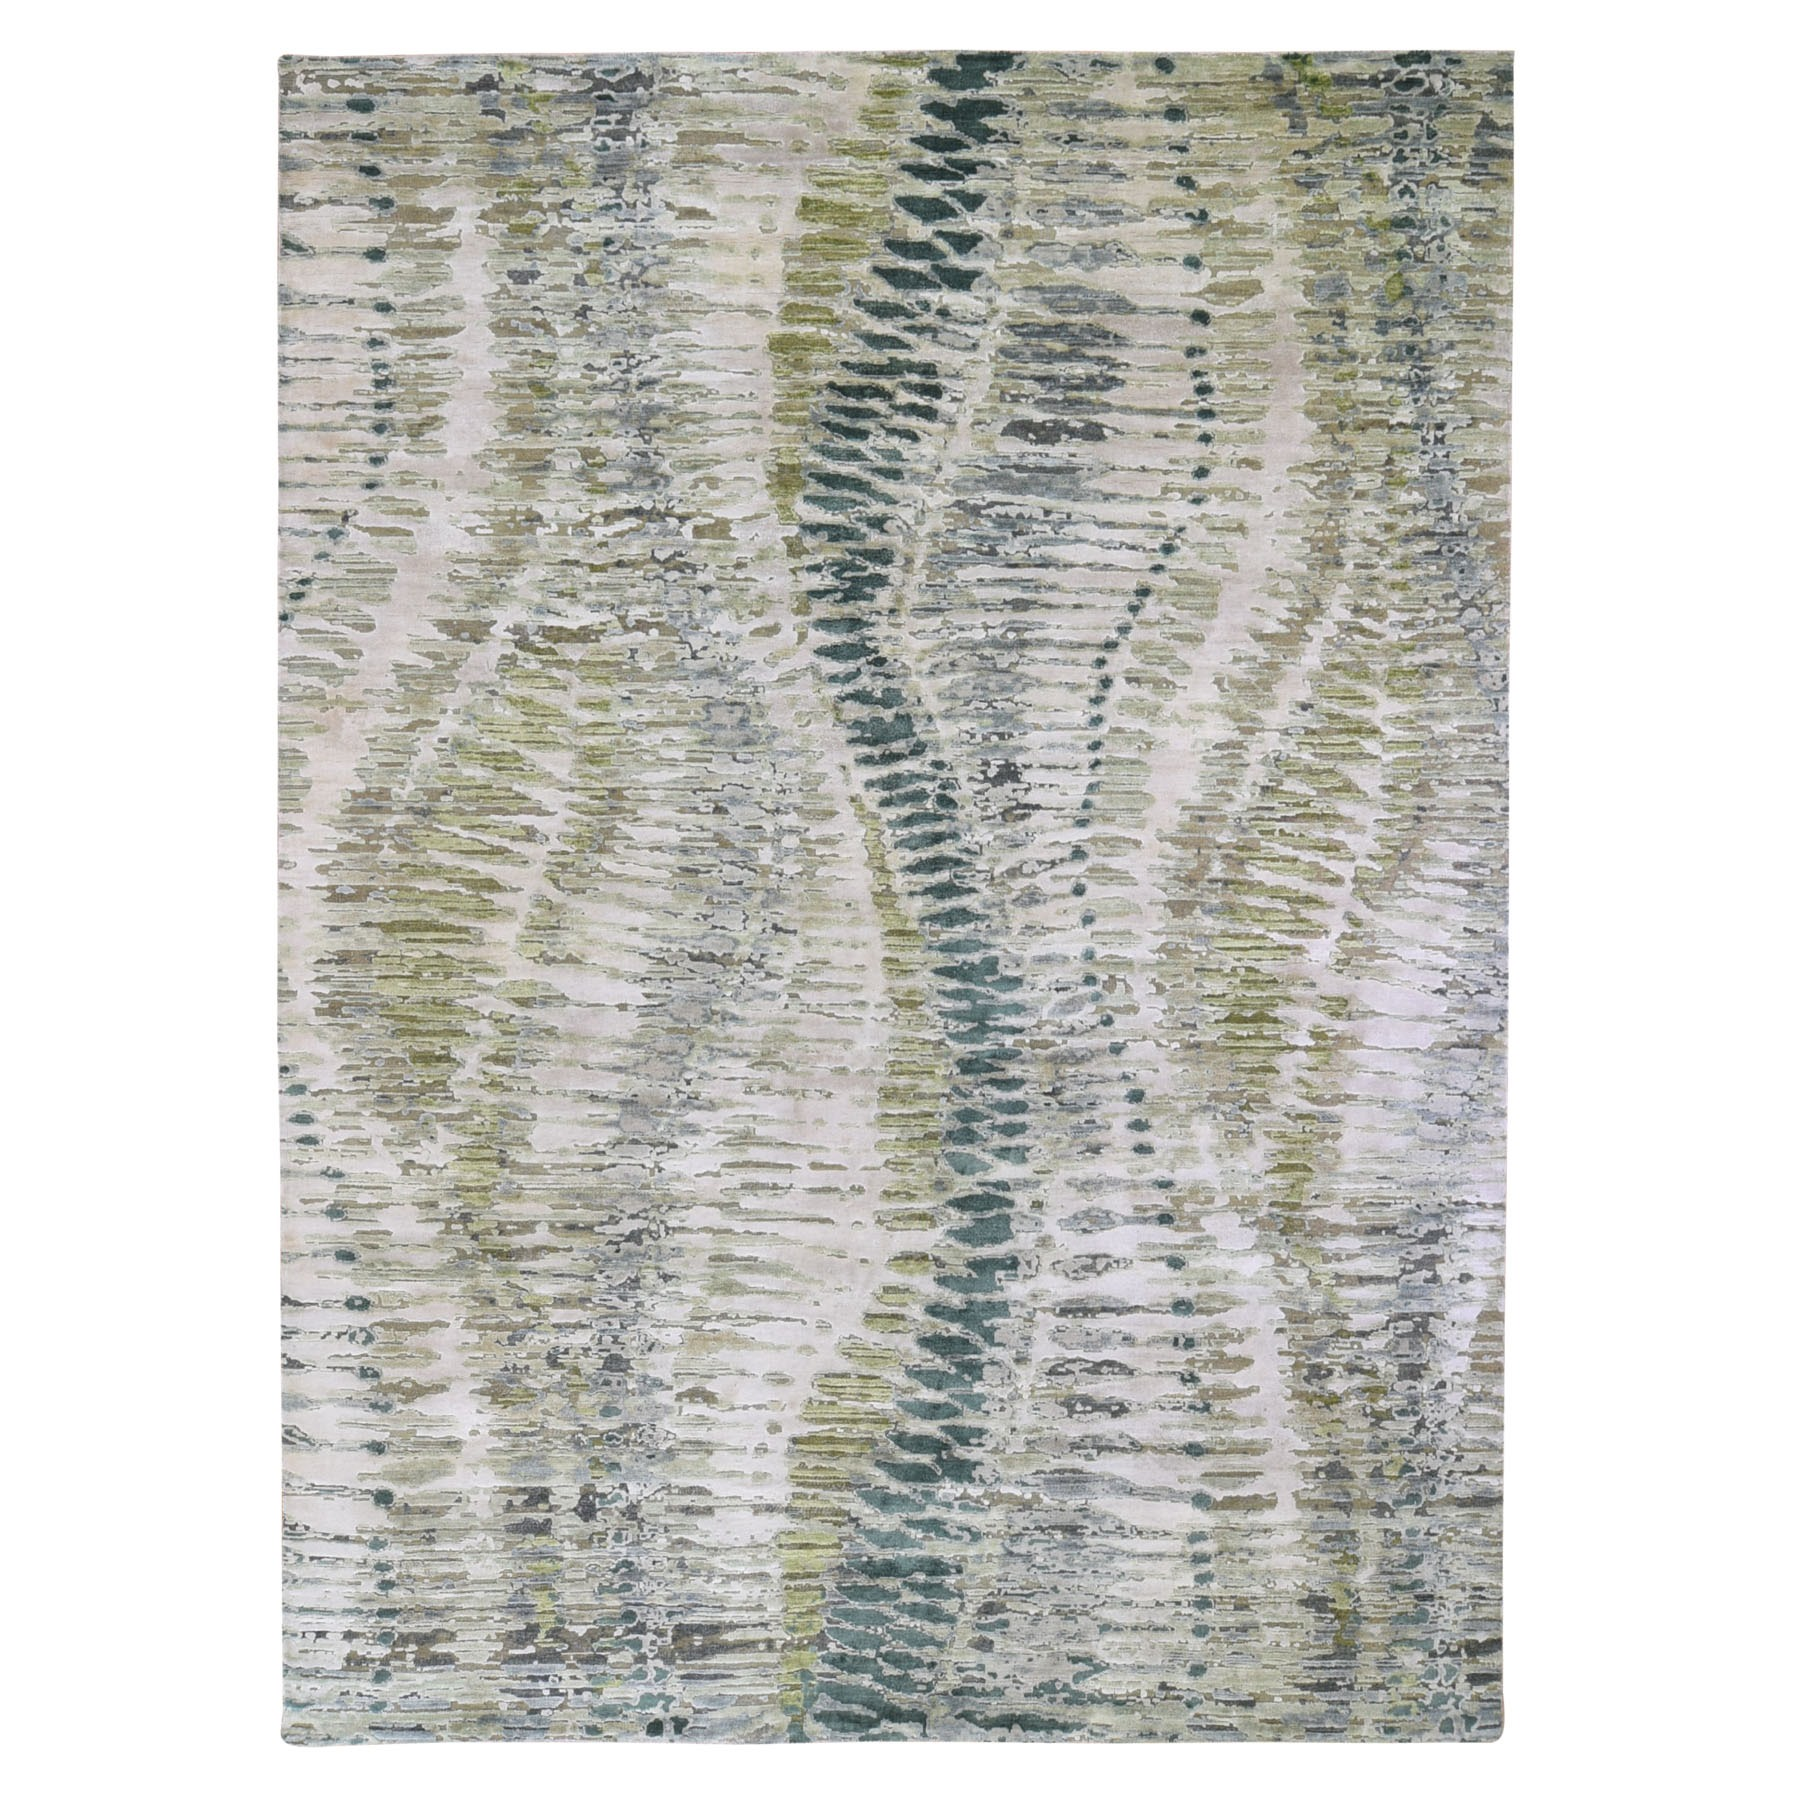 9'x12' Green Safari Tree Crocodile Design Pure Silk with Textured Wool Hand Woven Oriental Rug